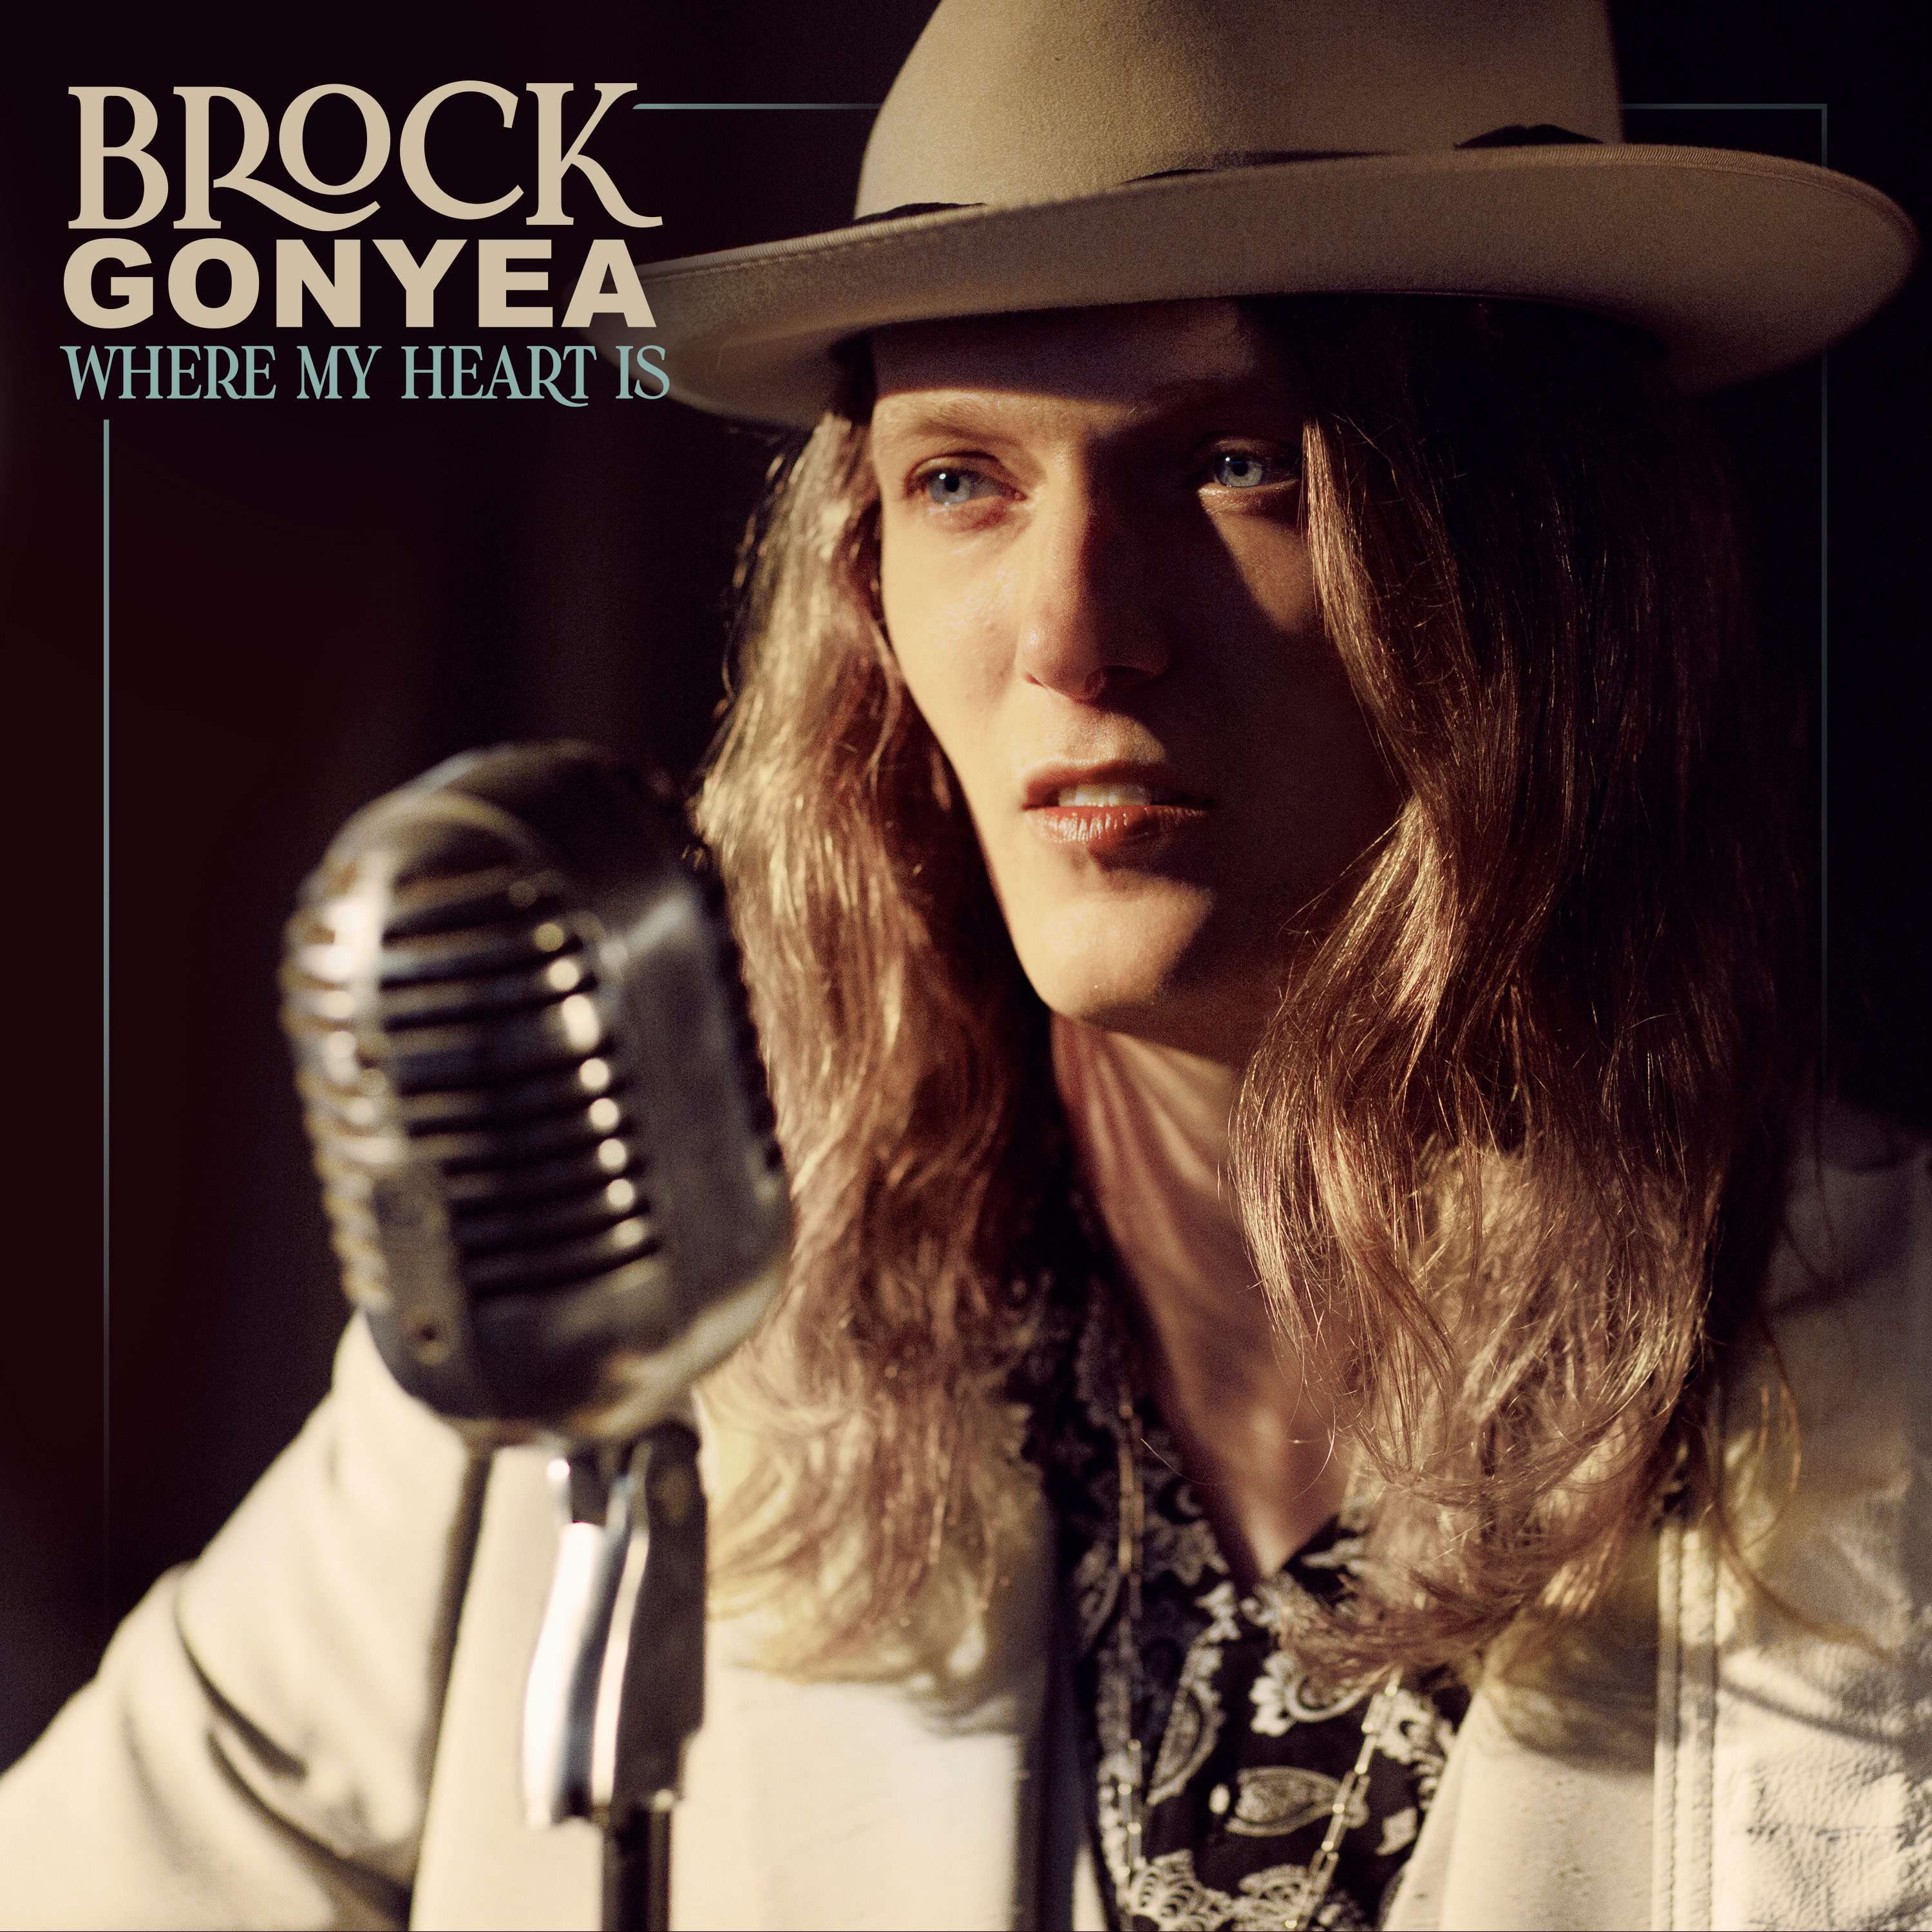 Brock Gonyea 'Where My Heart Is' cover